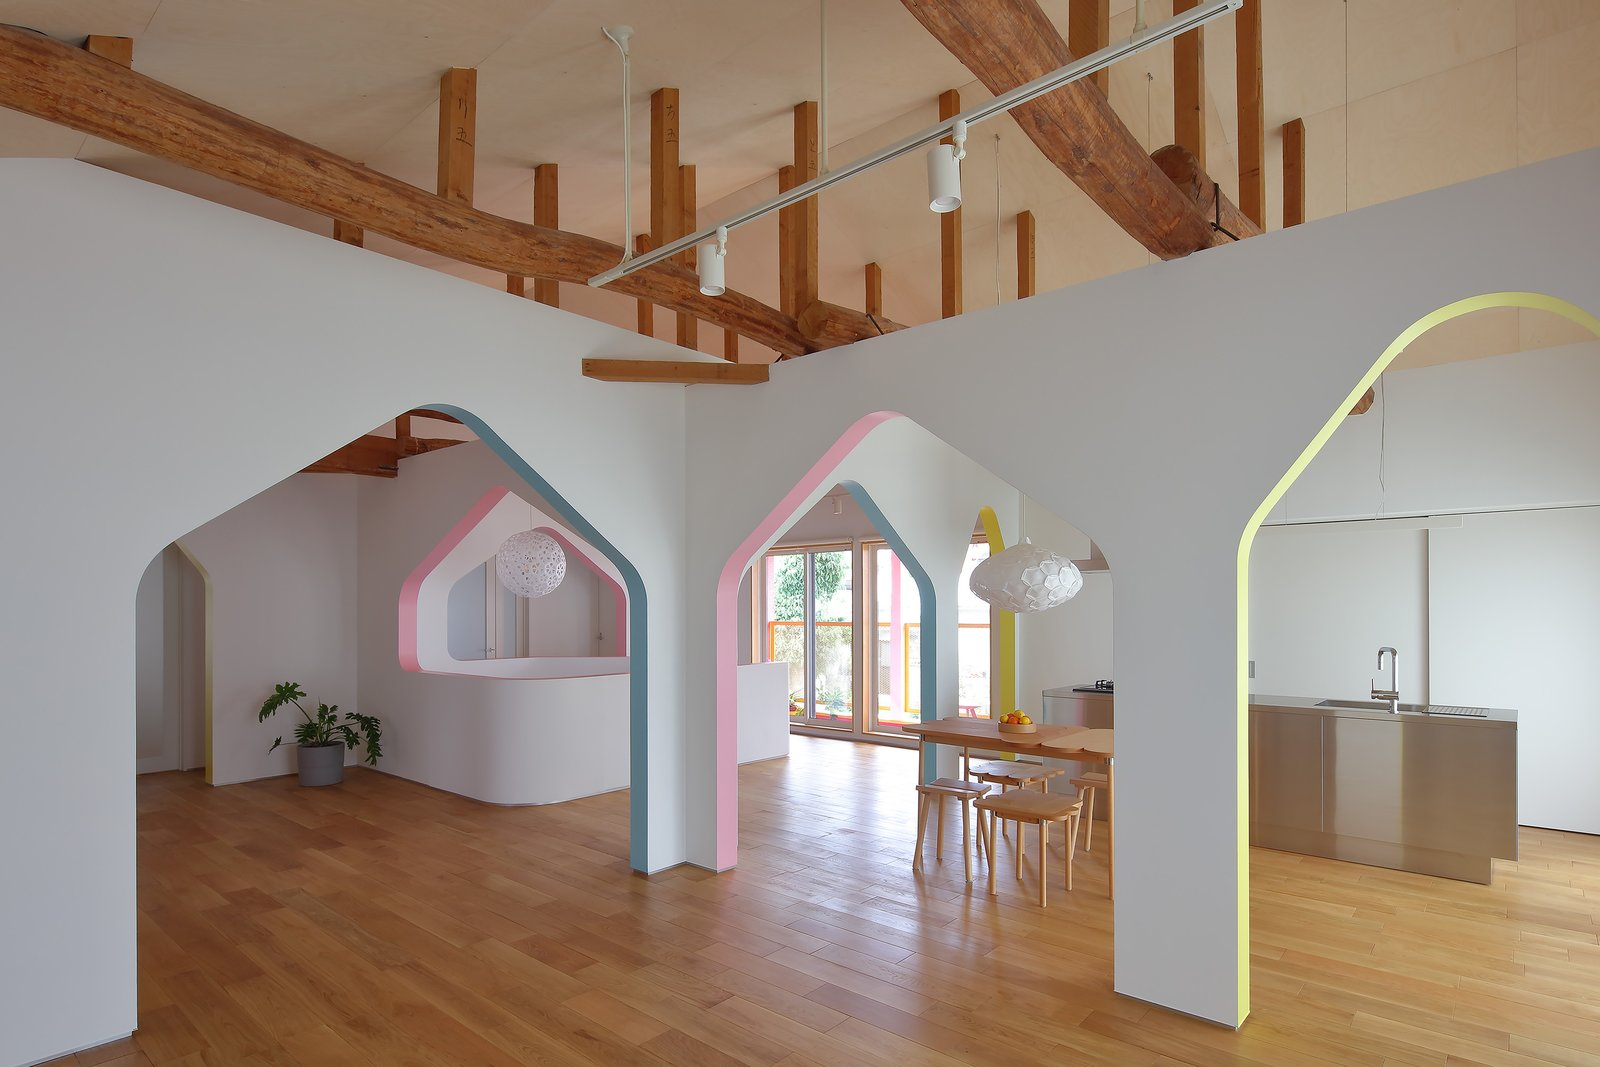 House of Many Arches living area